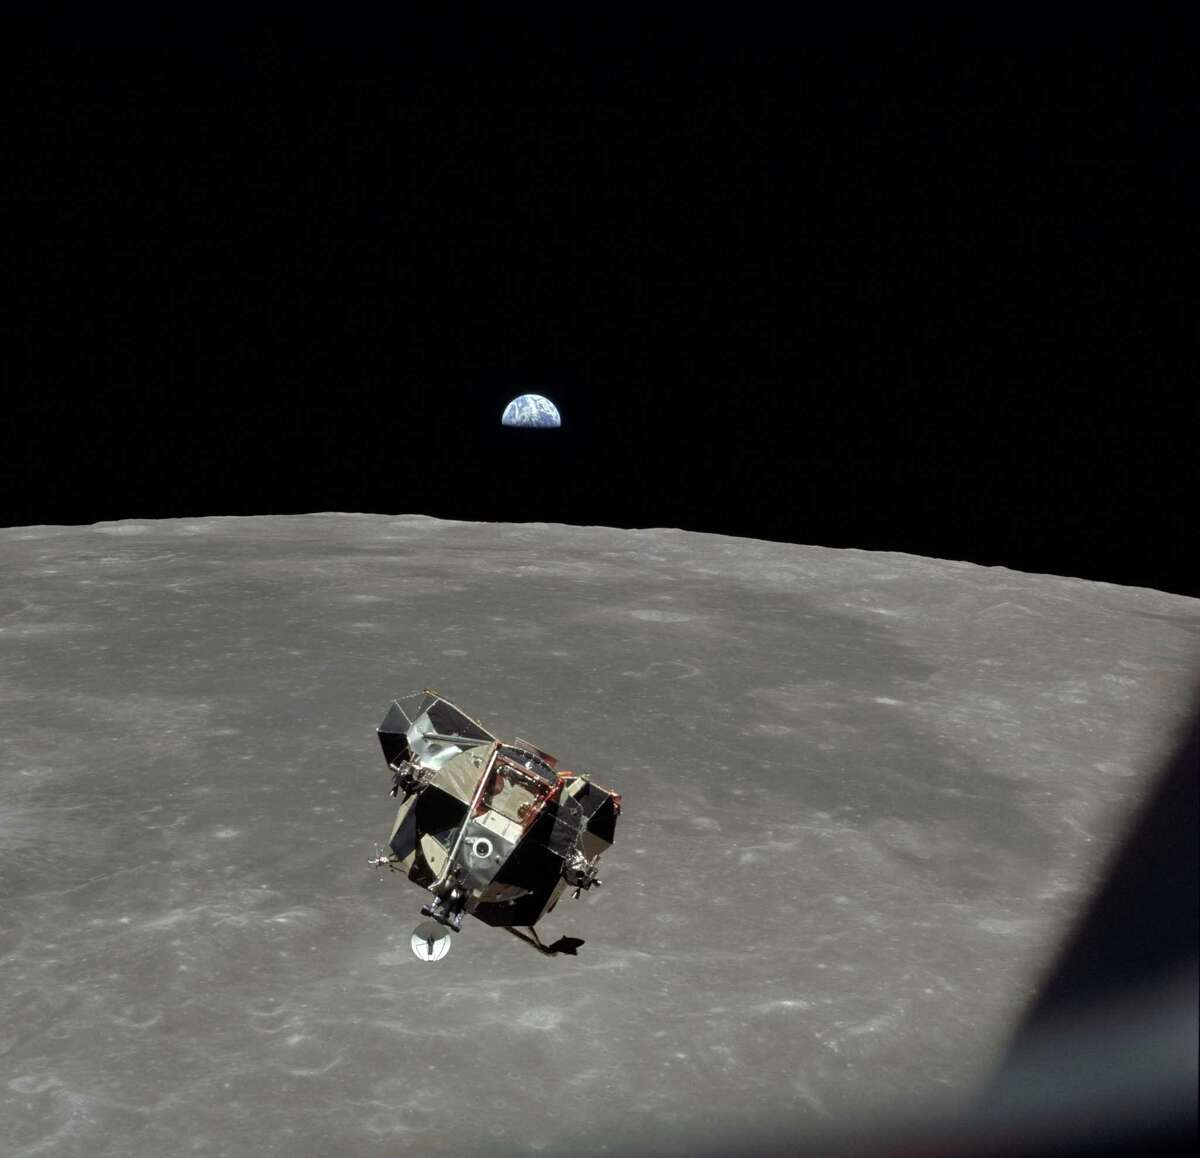 This photo obtained from NASA, shows the Eagle Lunar Module of the Apollo 11 space mission in lunar orbit, July 20, 1969.